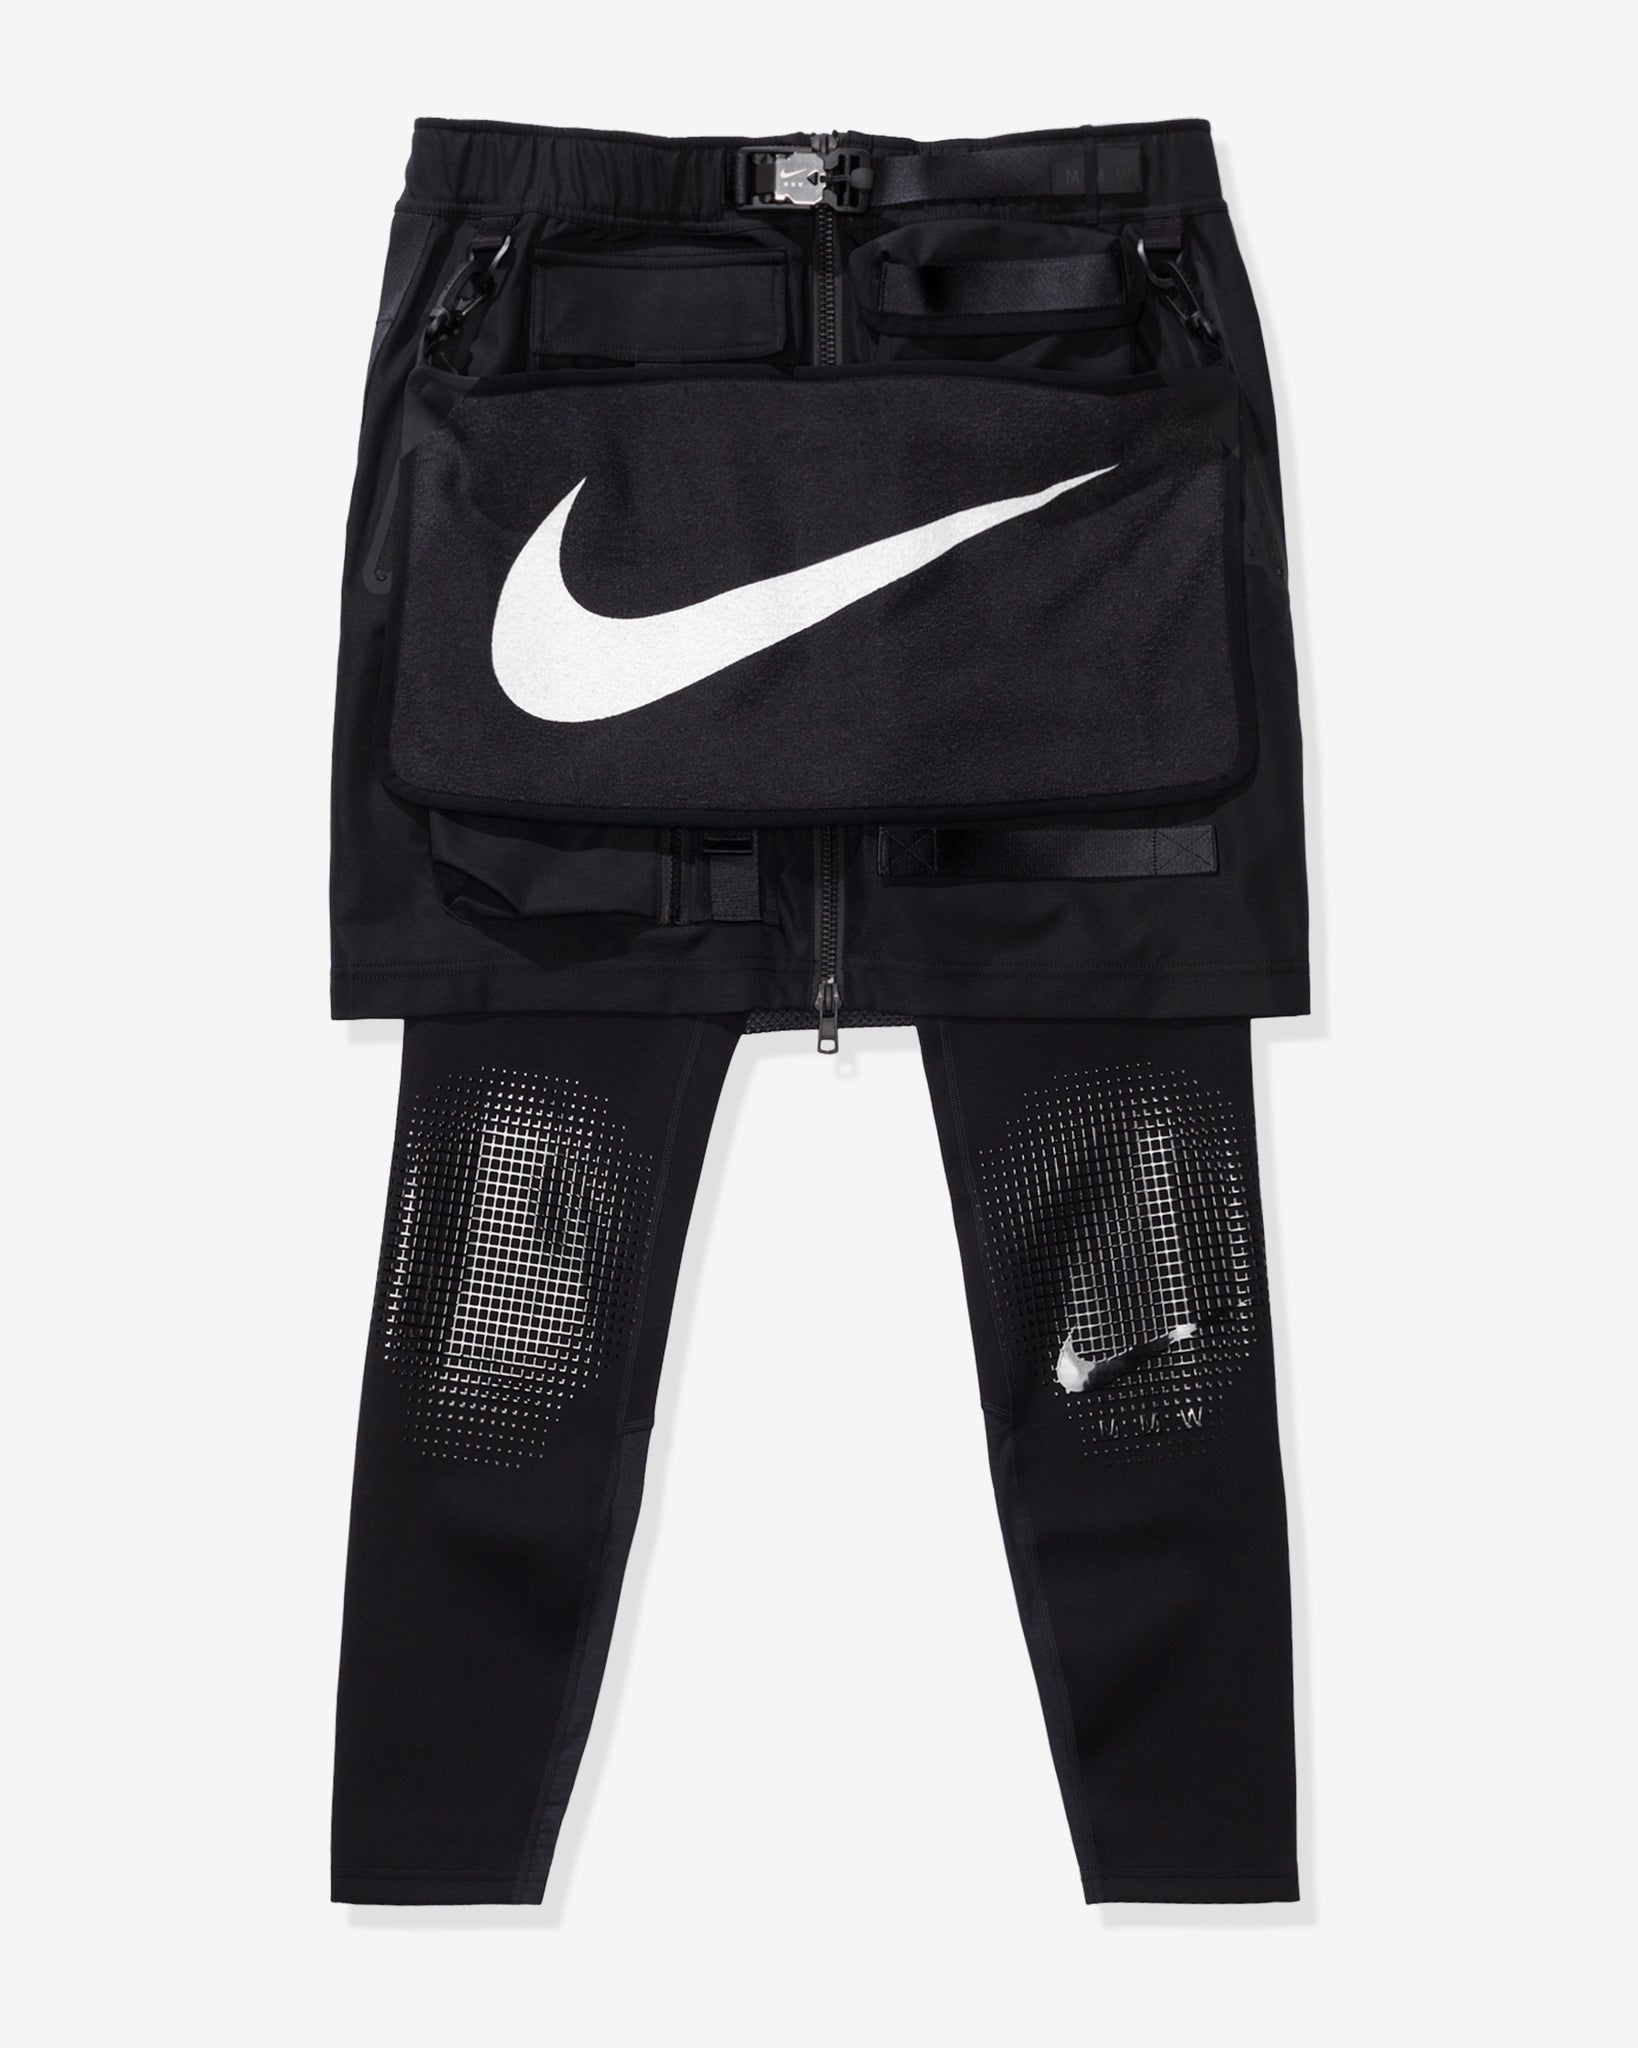 NIKE X MMW WOMEN'S 2.0 2-IN-1 SKIRT - BLACK